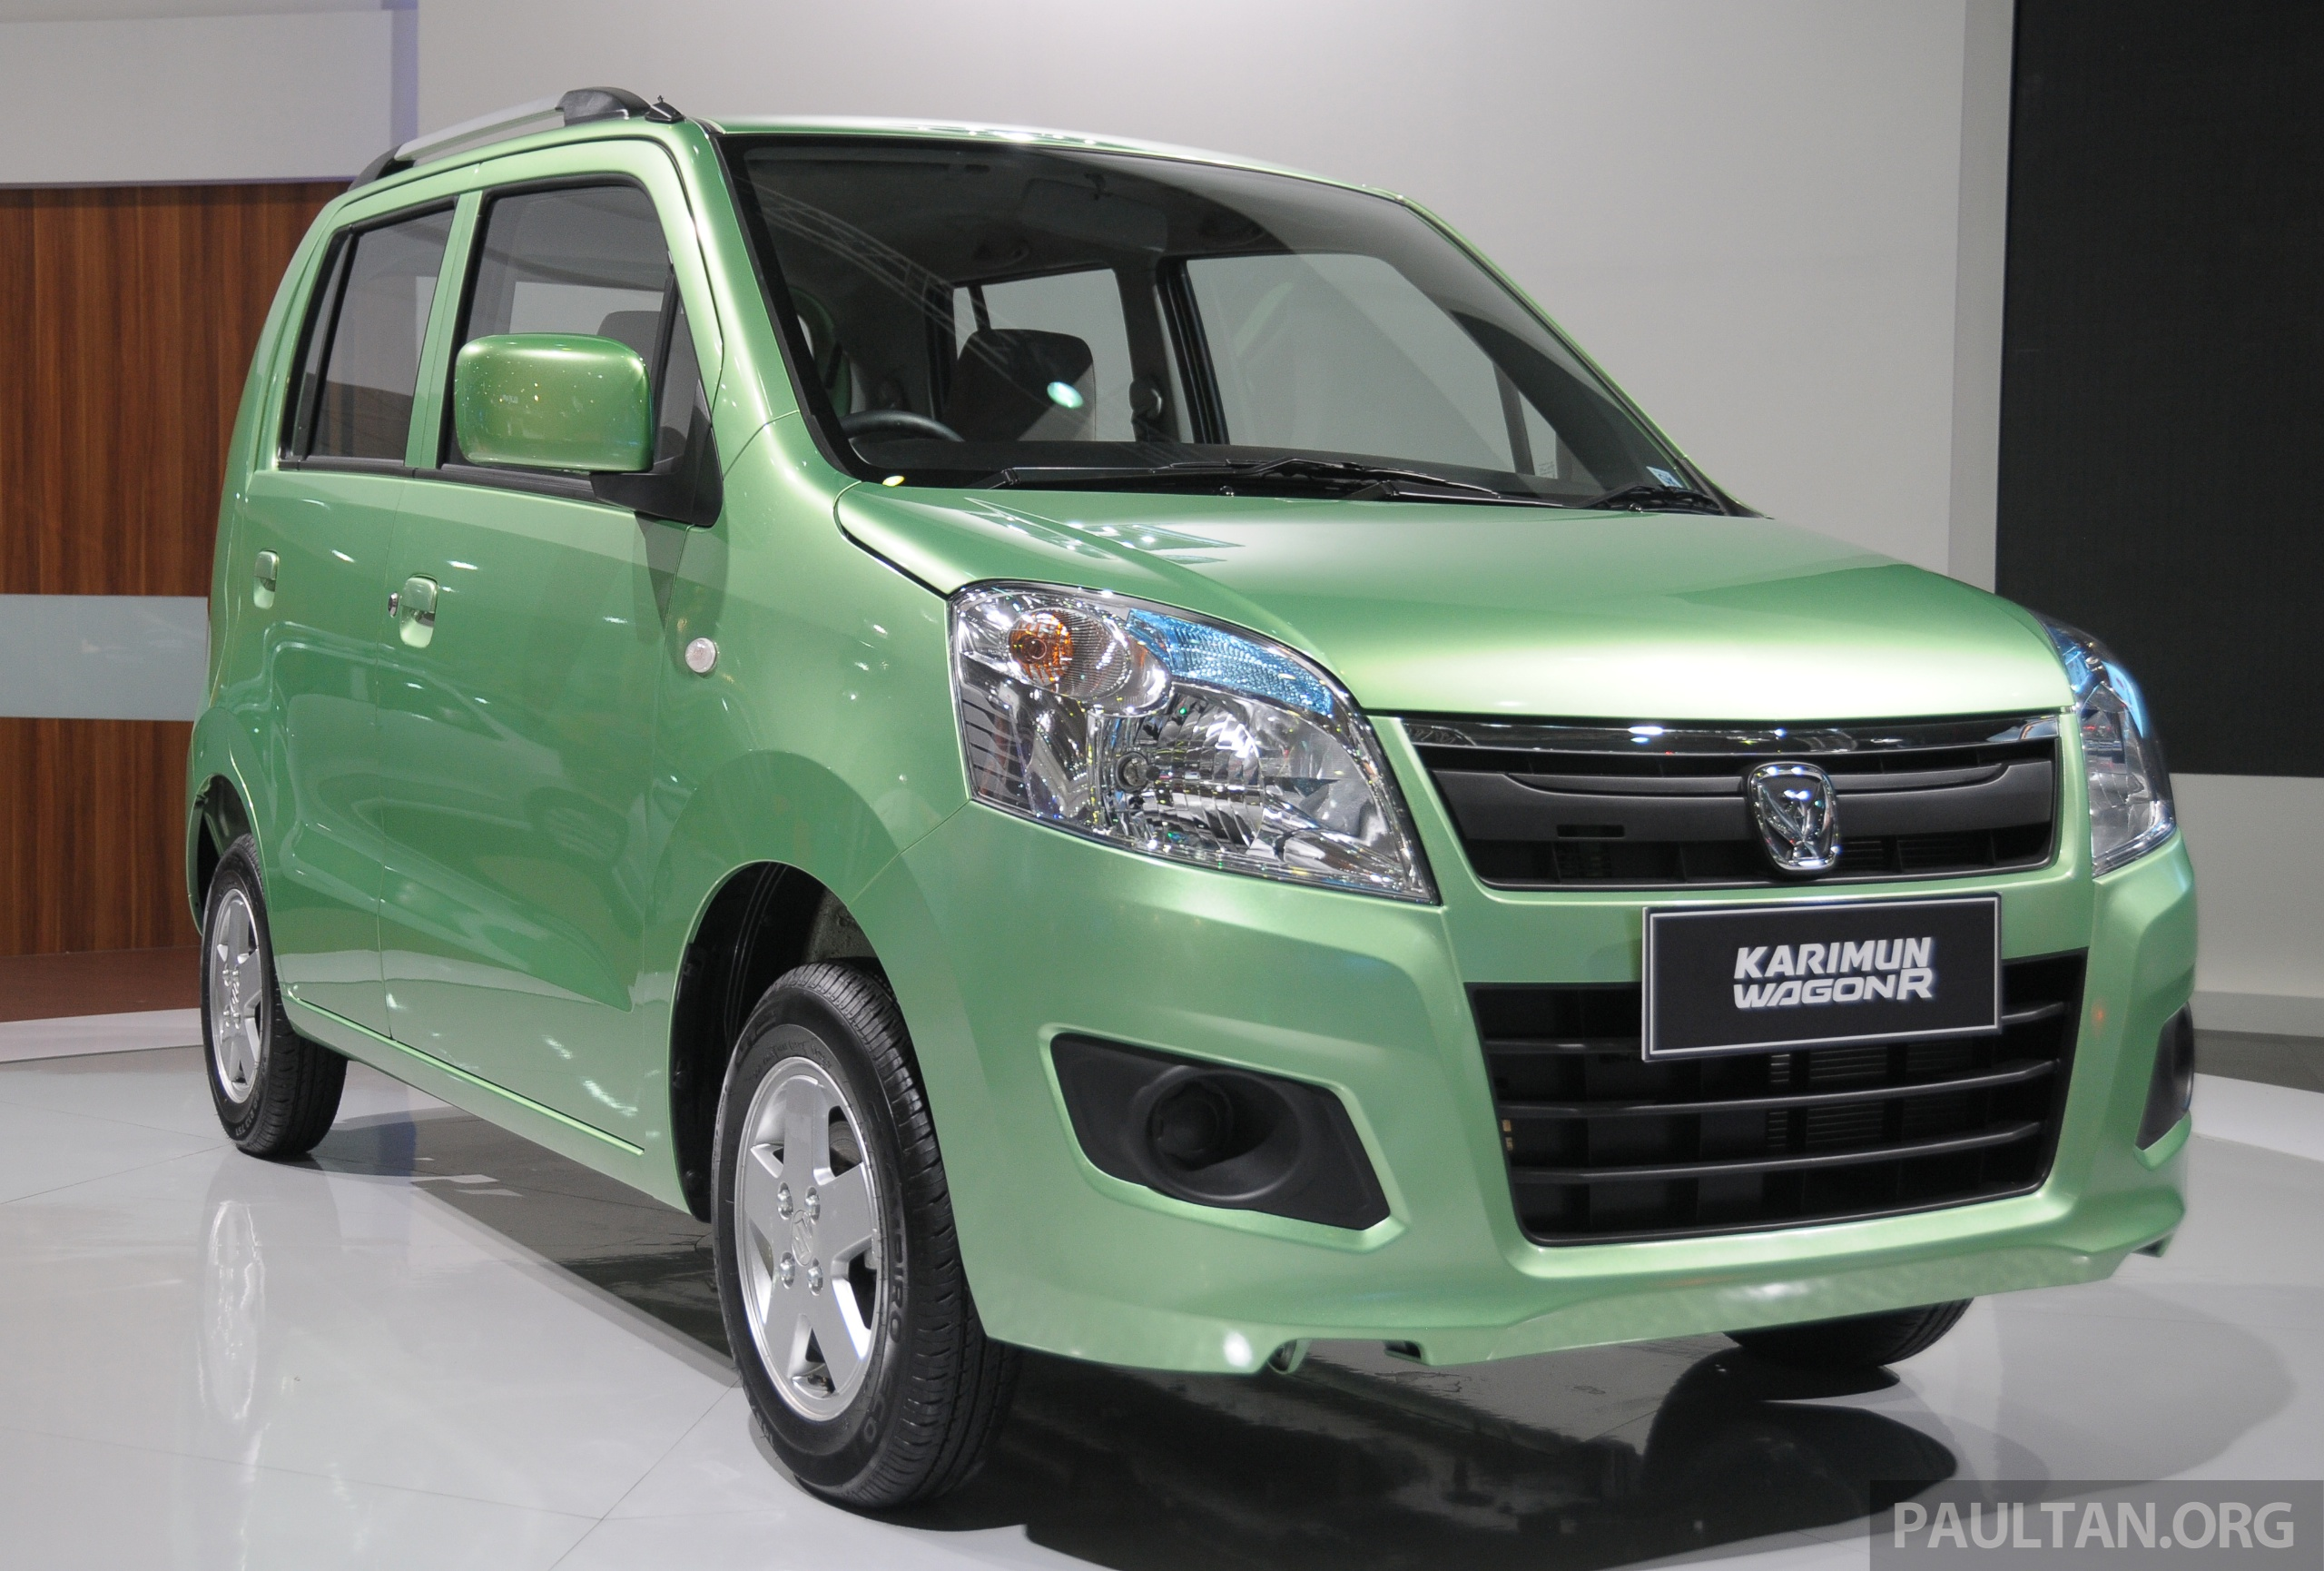 New Suzuki Karimun Wagon R And Stingray At IIMS